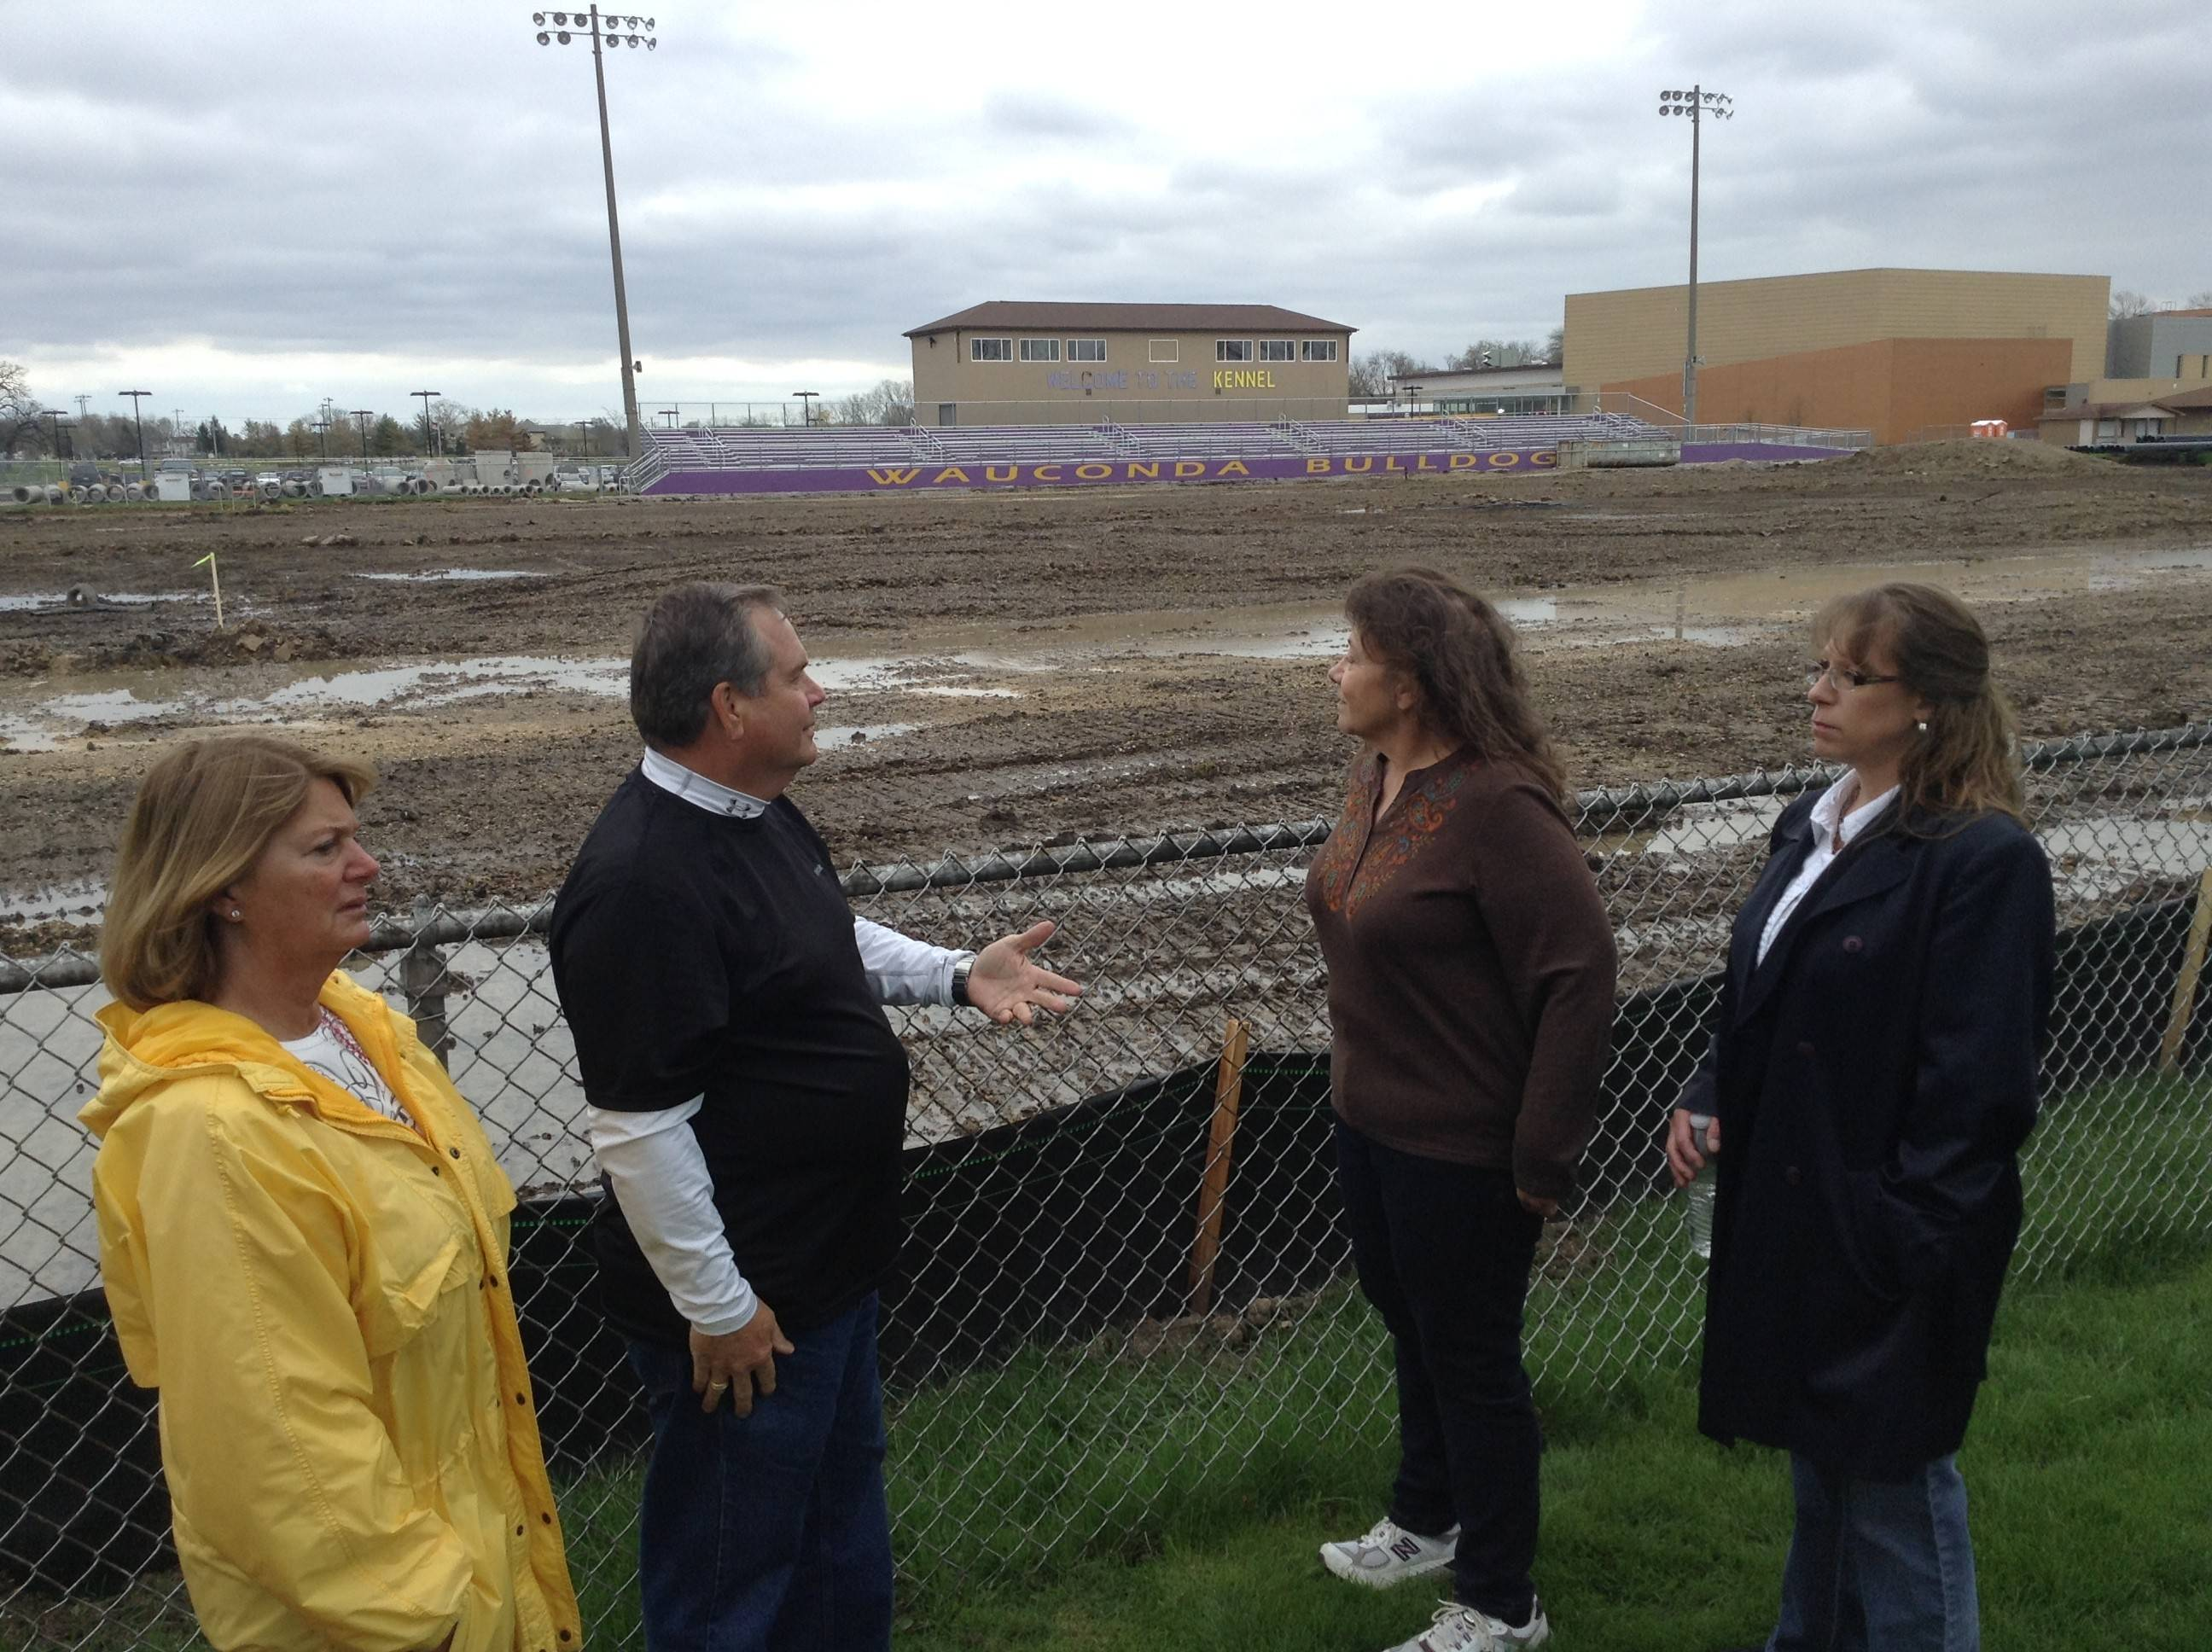 Wauconda High football fans happy taller fence won't be installed